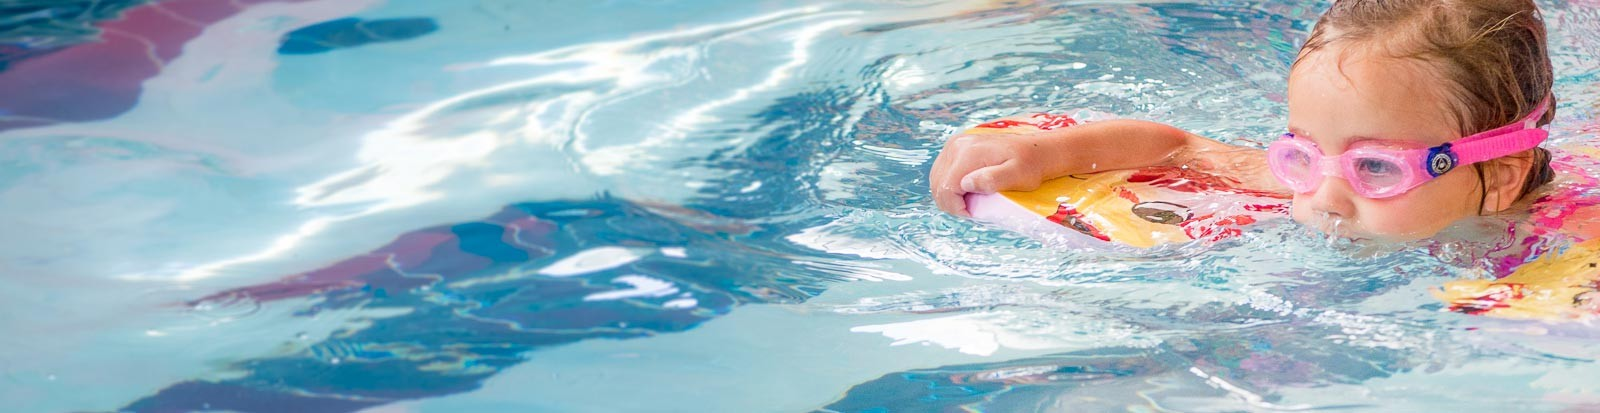 Shirley swimming pool swimming lessons southampton - Wetherby swimming pool swim times ...